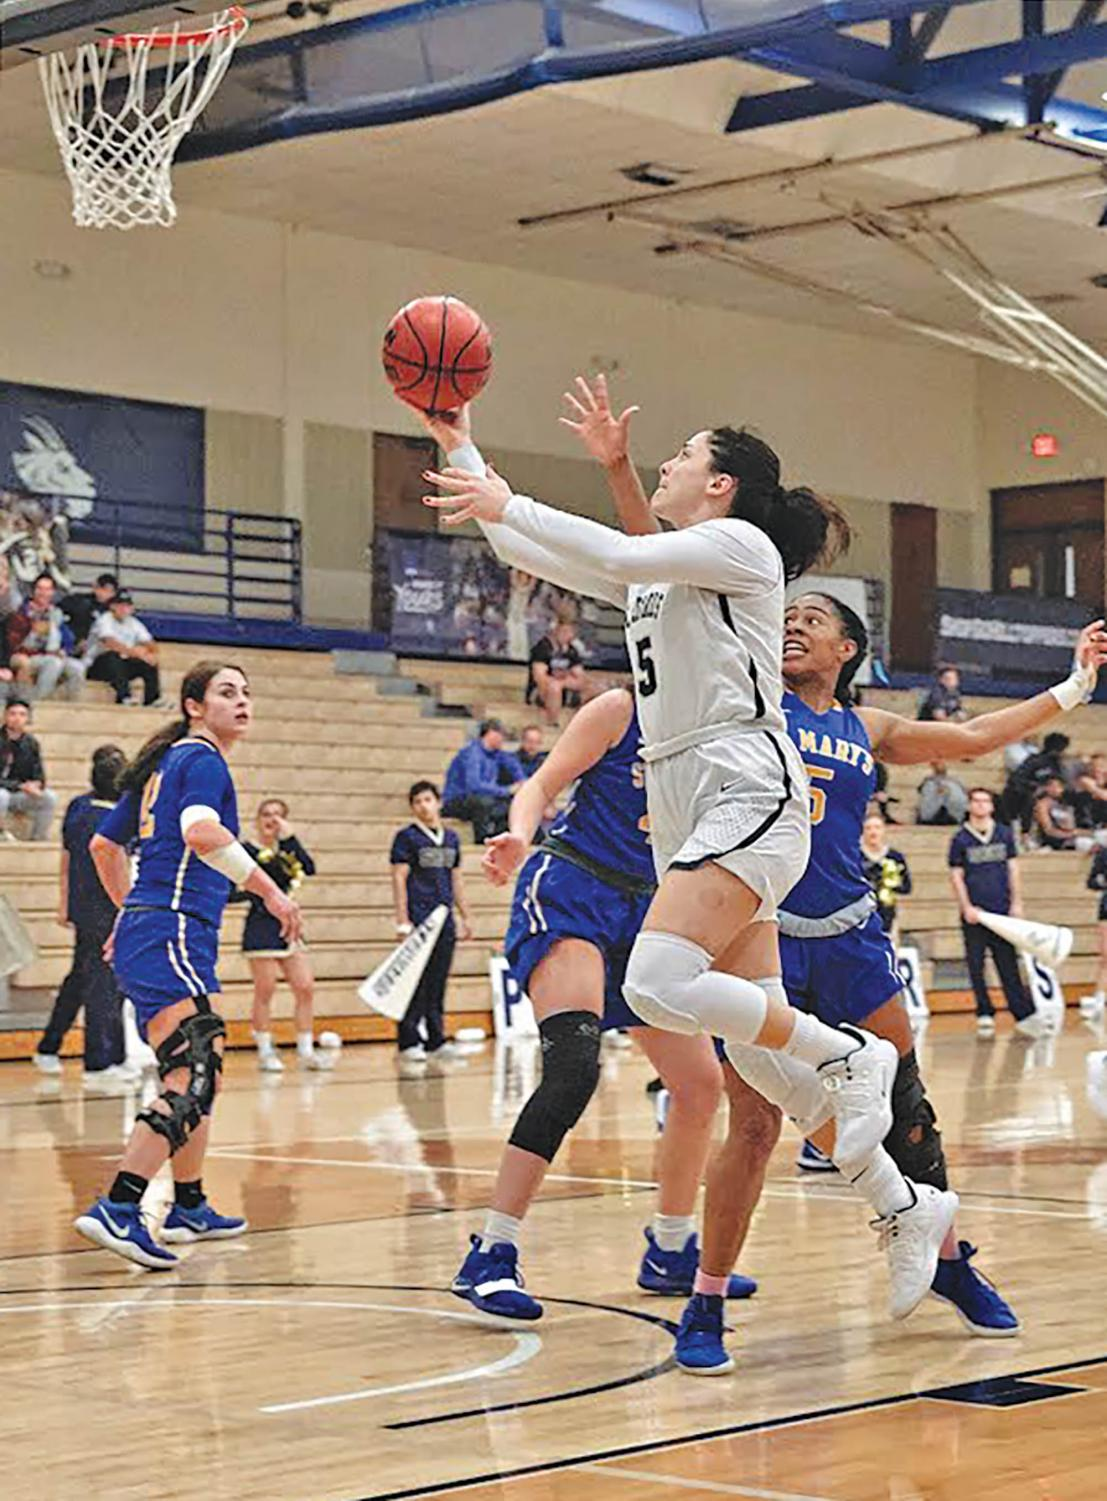 Isabel Hernandez' career-high 39 points helps lead to Coach Riehl's 100th career win.